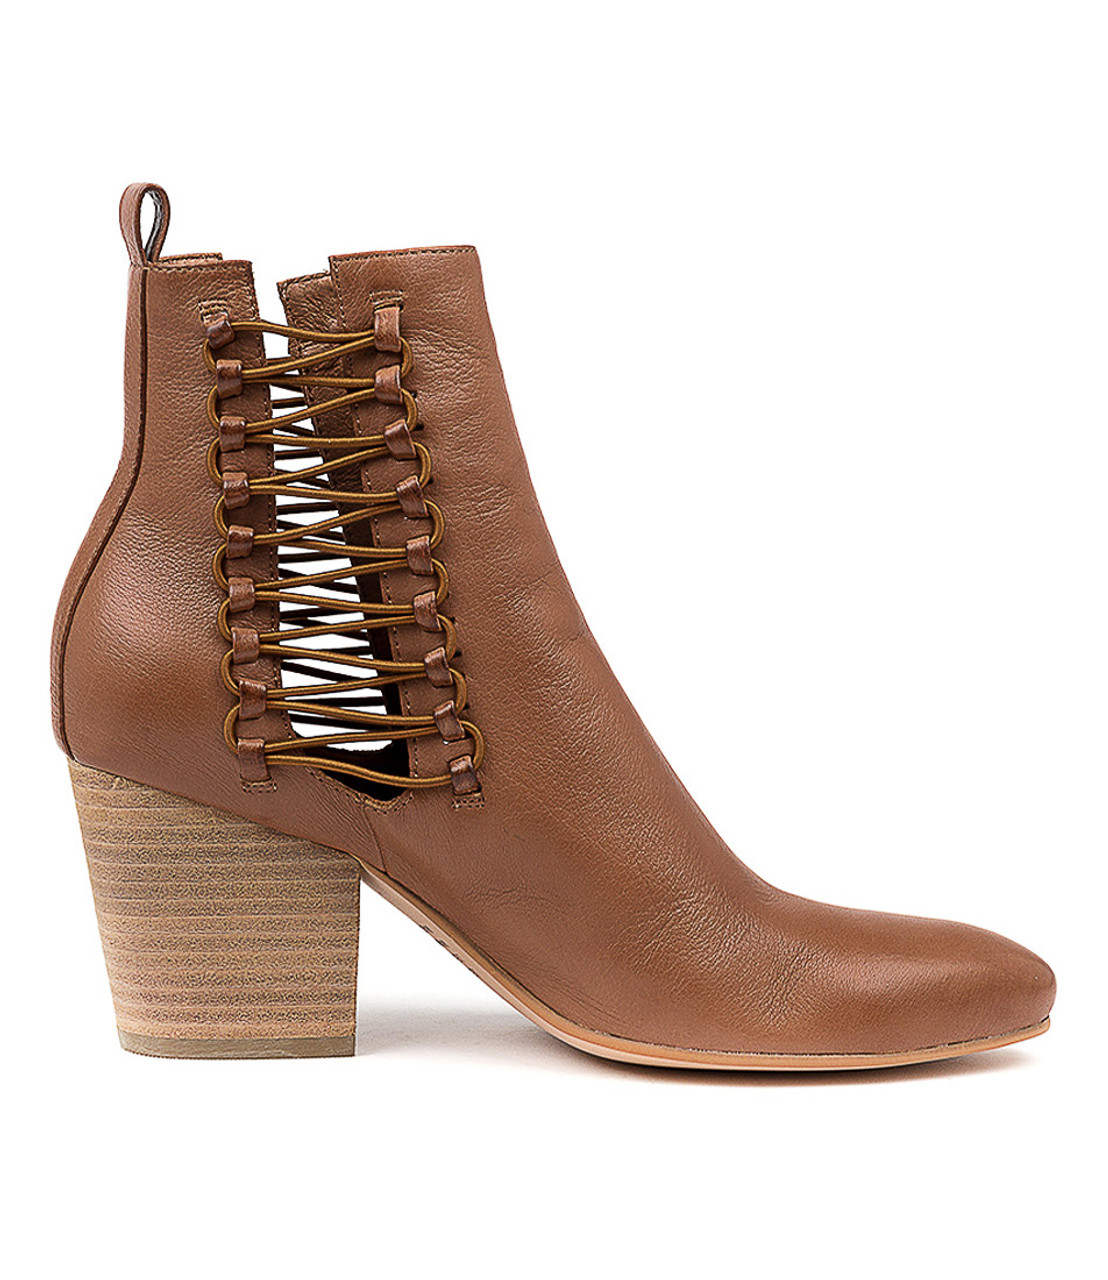 e5589fccc7f ISHMAEL Ankle Boots in Cognac Leather - Django and Juliette